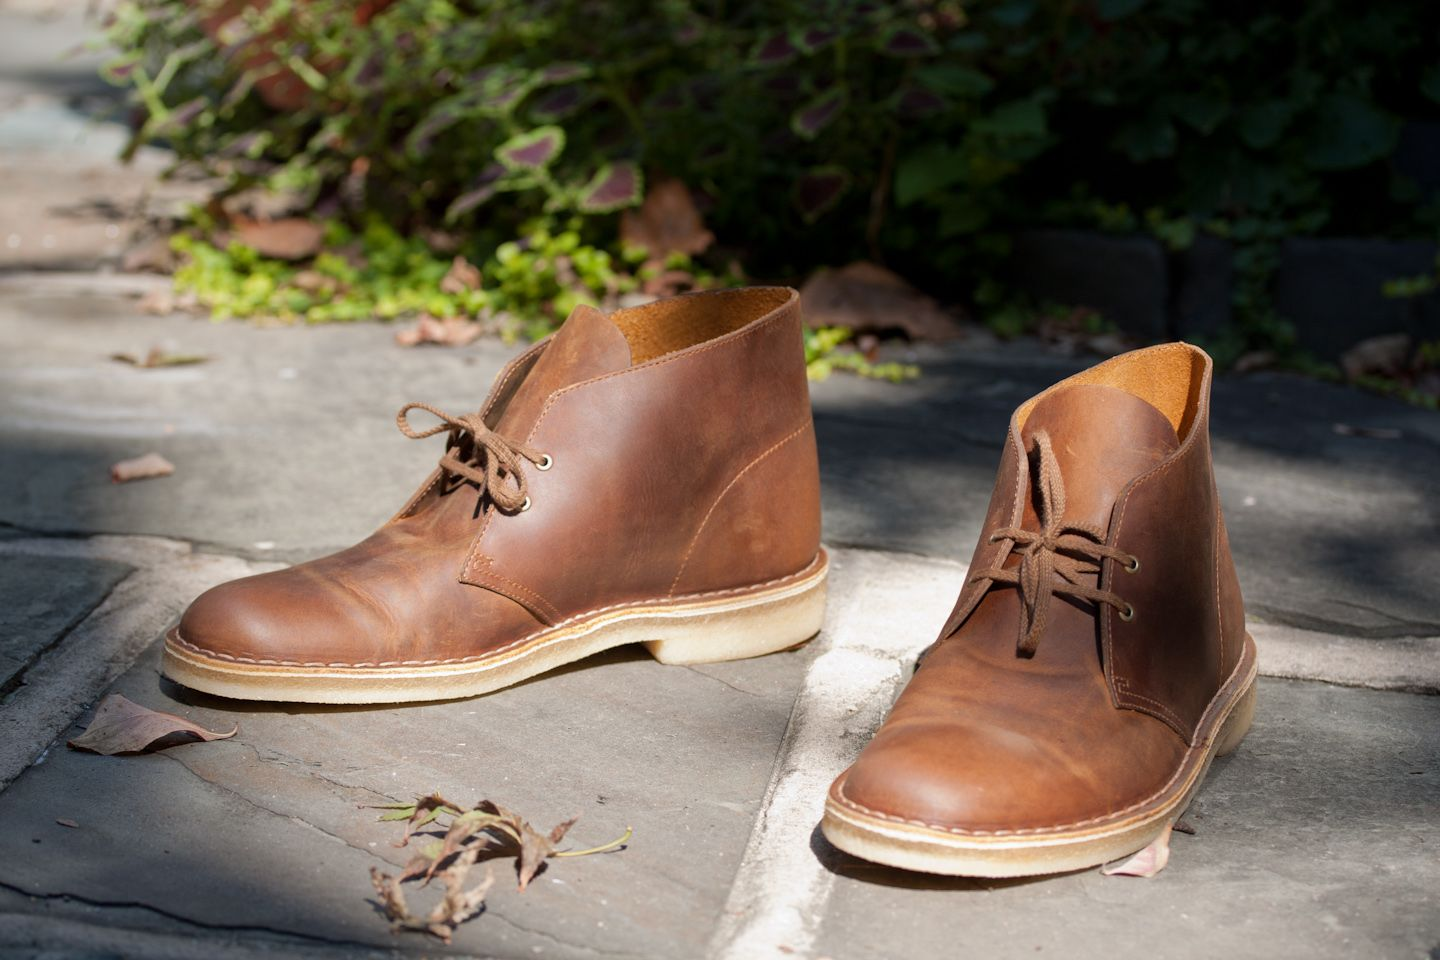 cleaning clarks desert boots